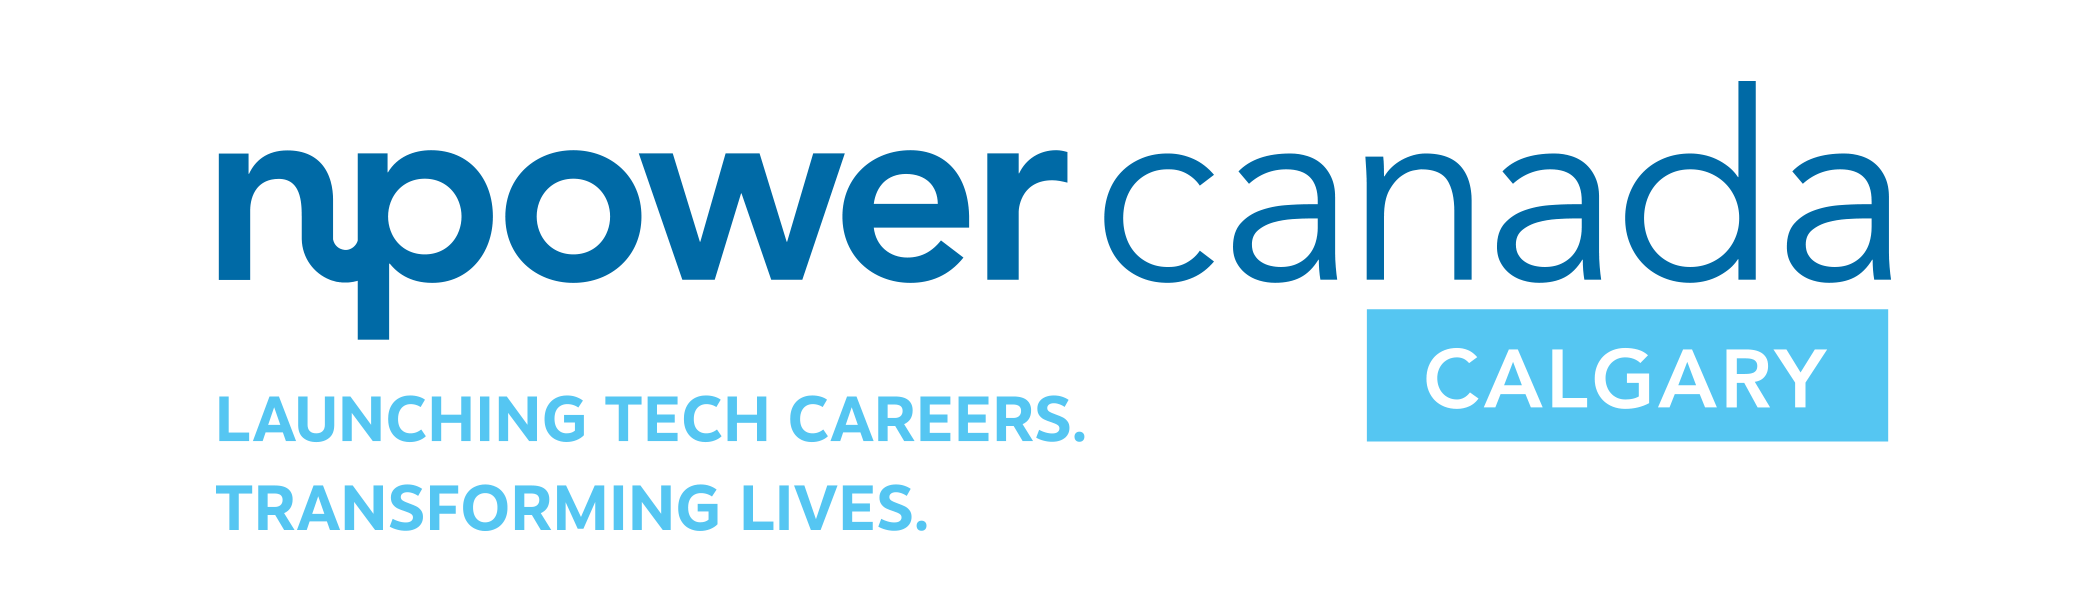 INDIGENOUS YOUTH TECH CAREER PATHWAYS (IYTCP) – npower canada